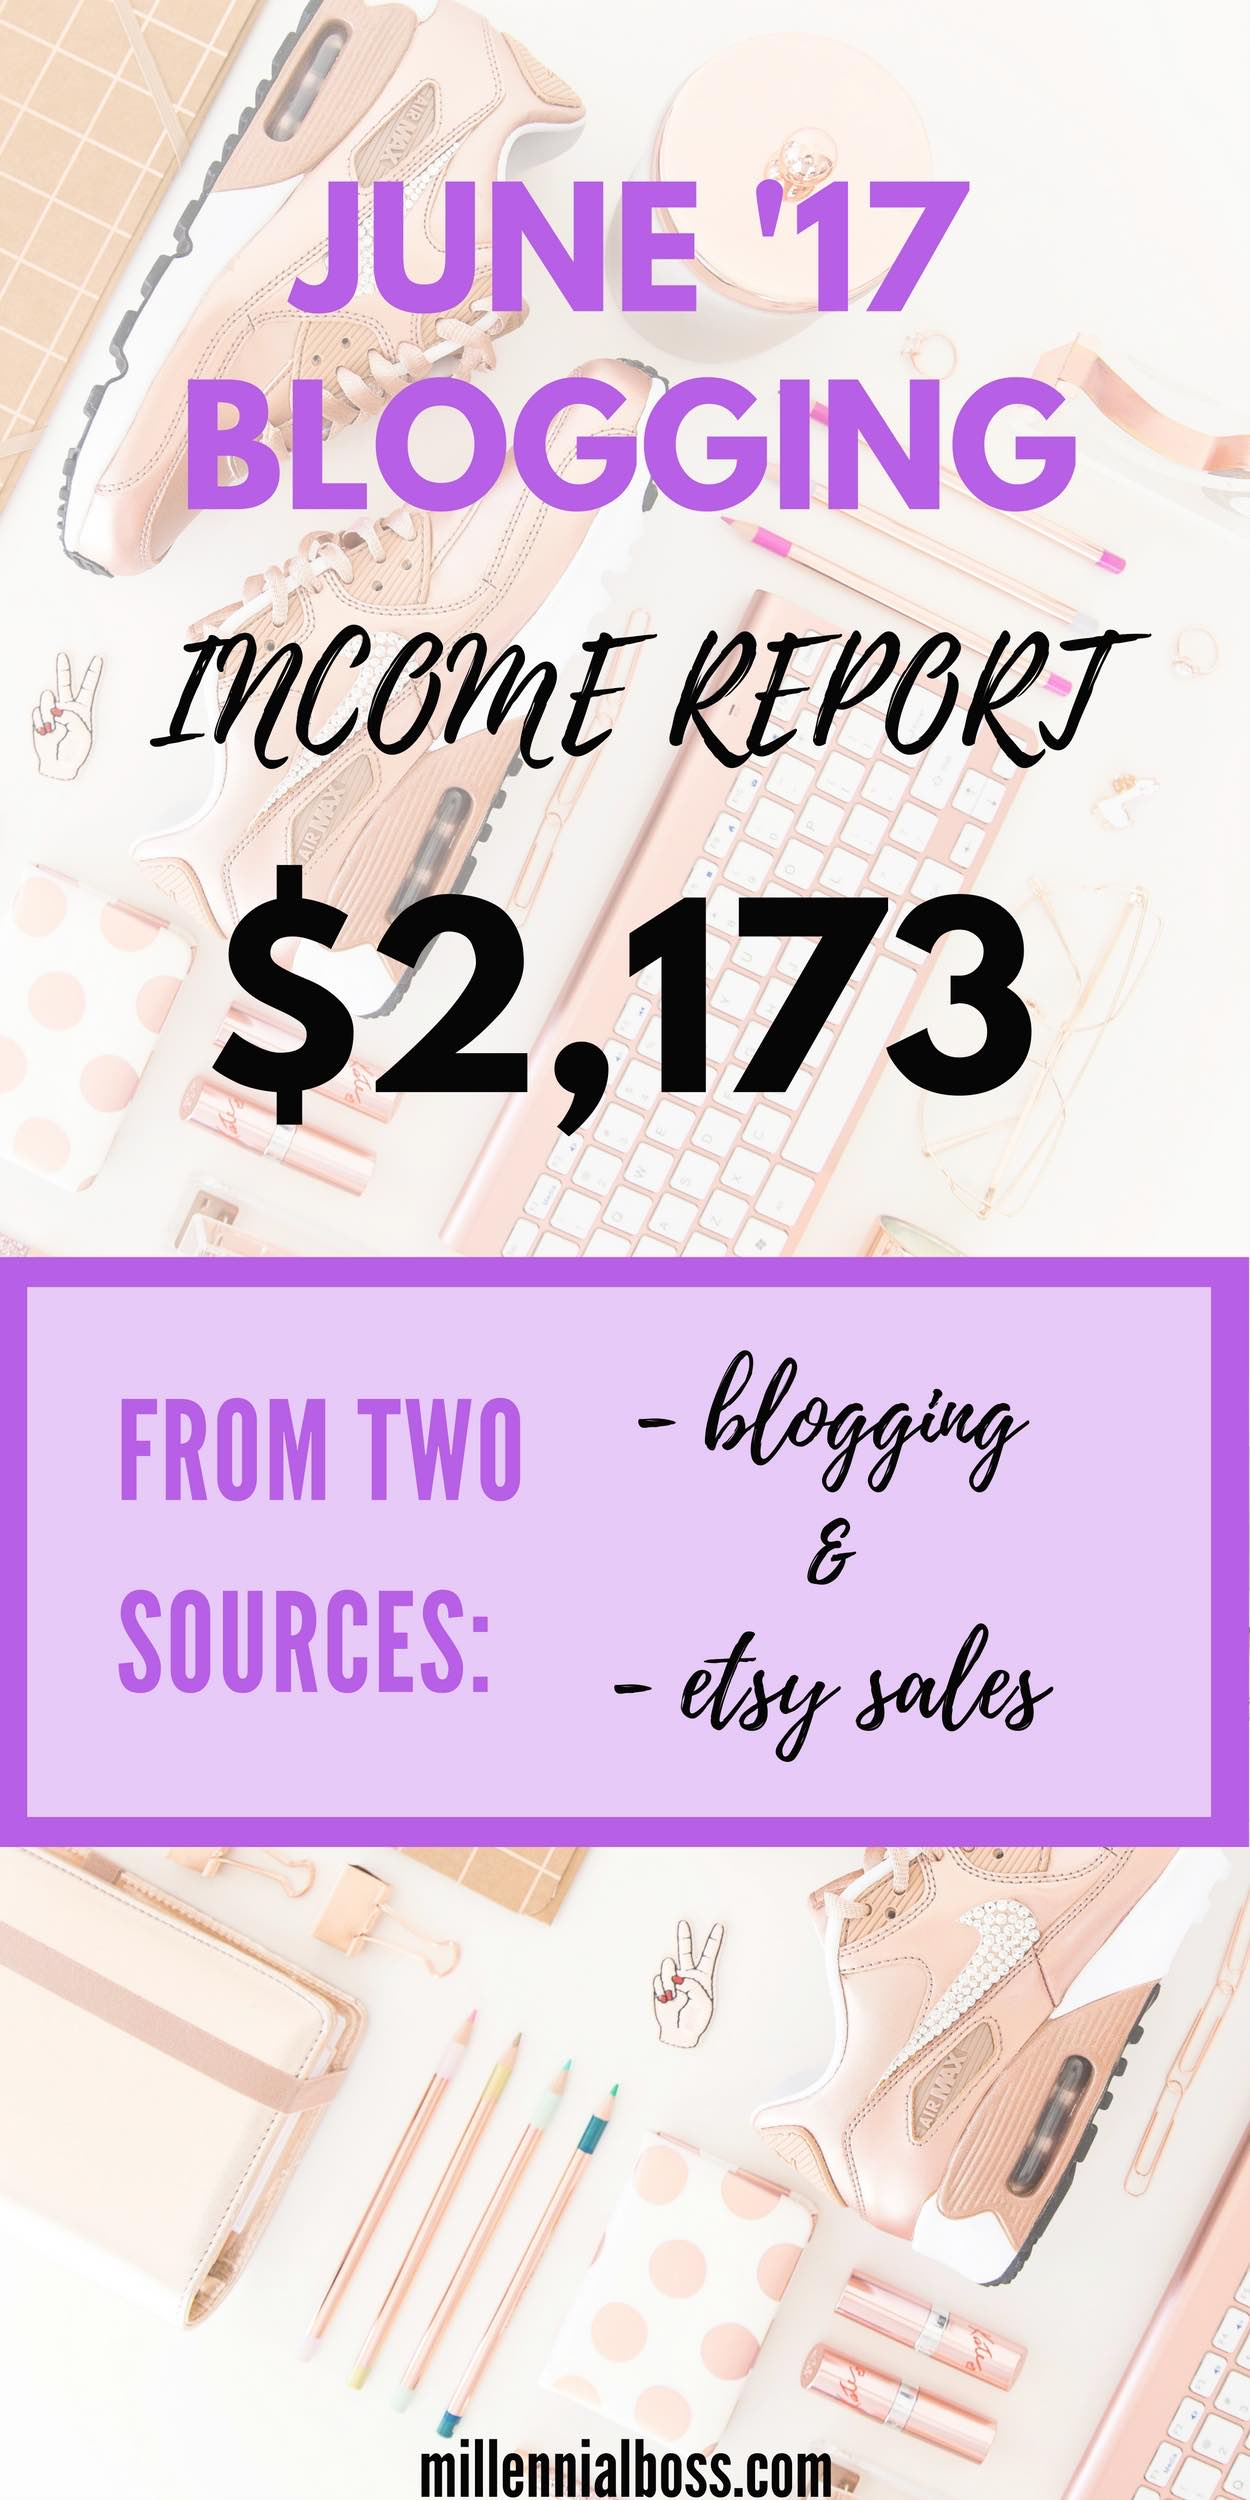 top blogging income reports for June 2017 | June 2017 income reports | July Income Reports